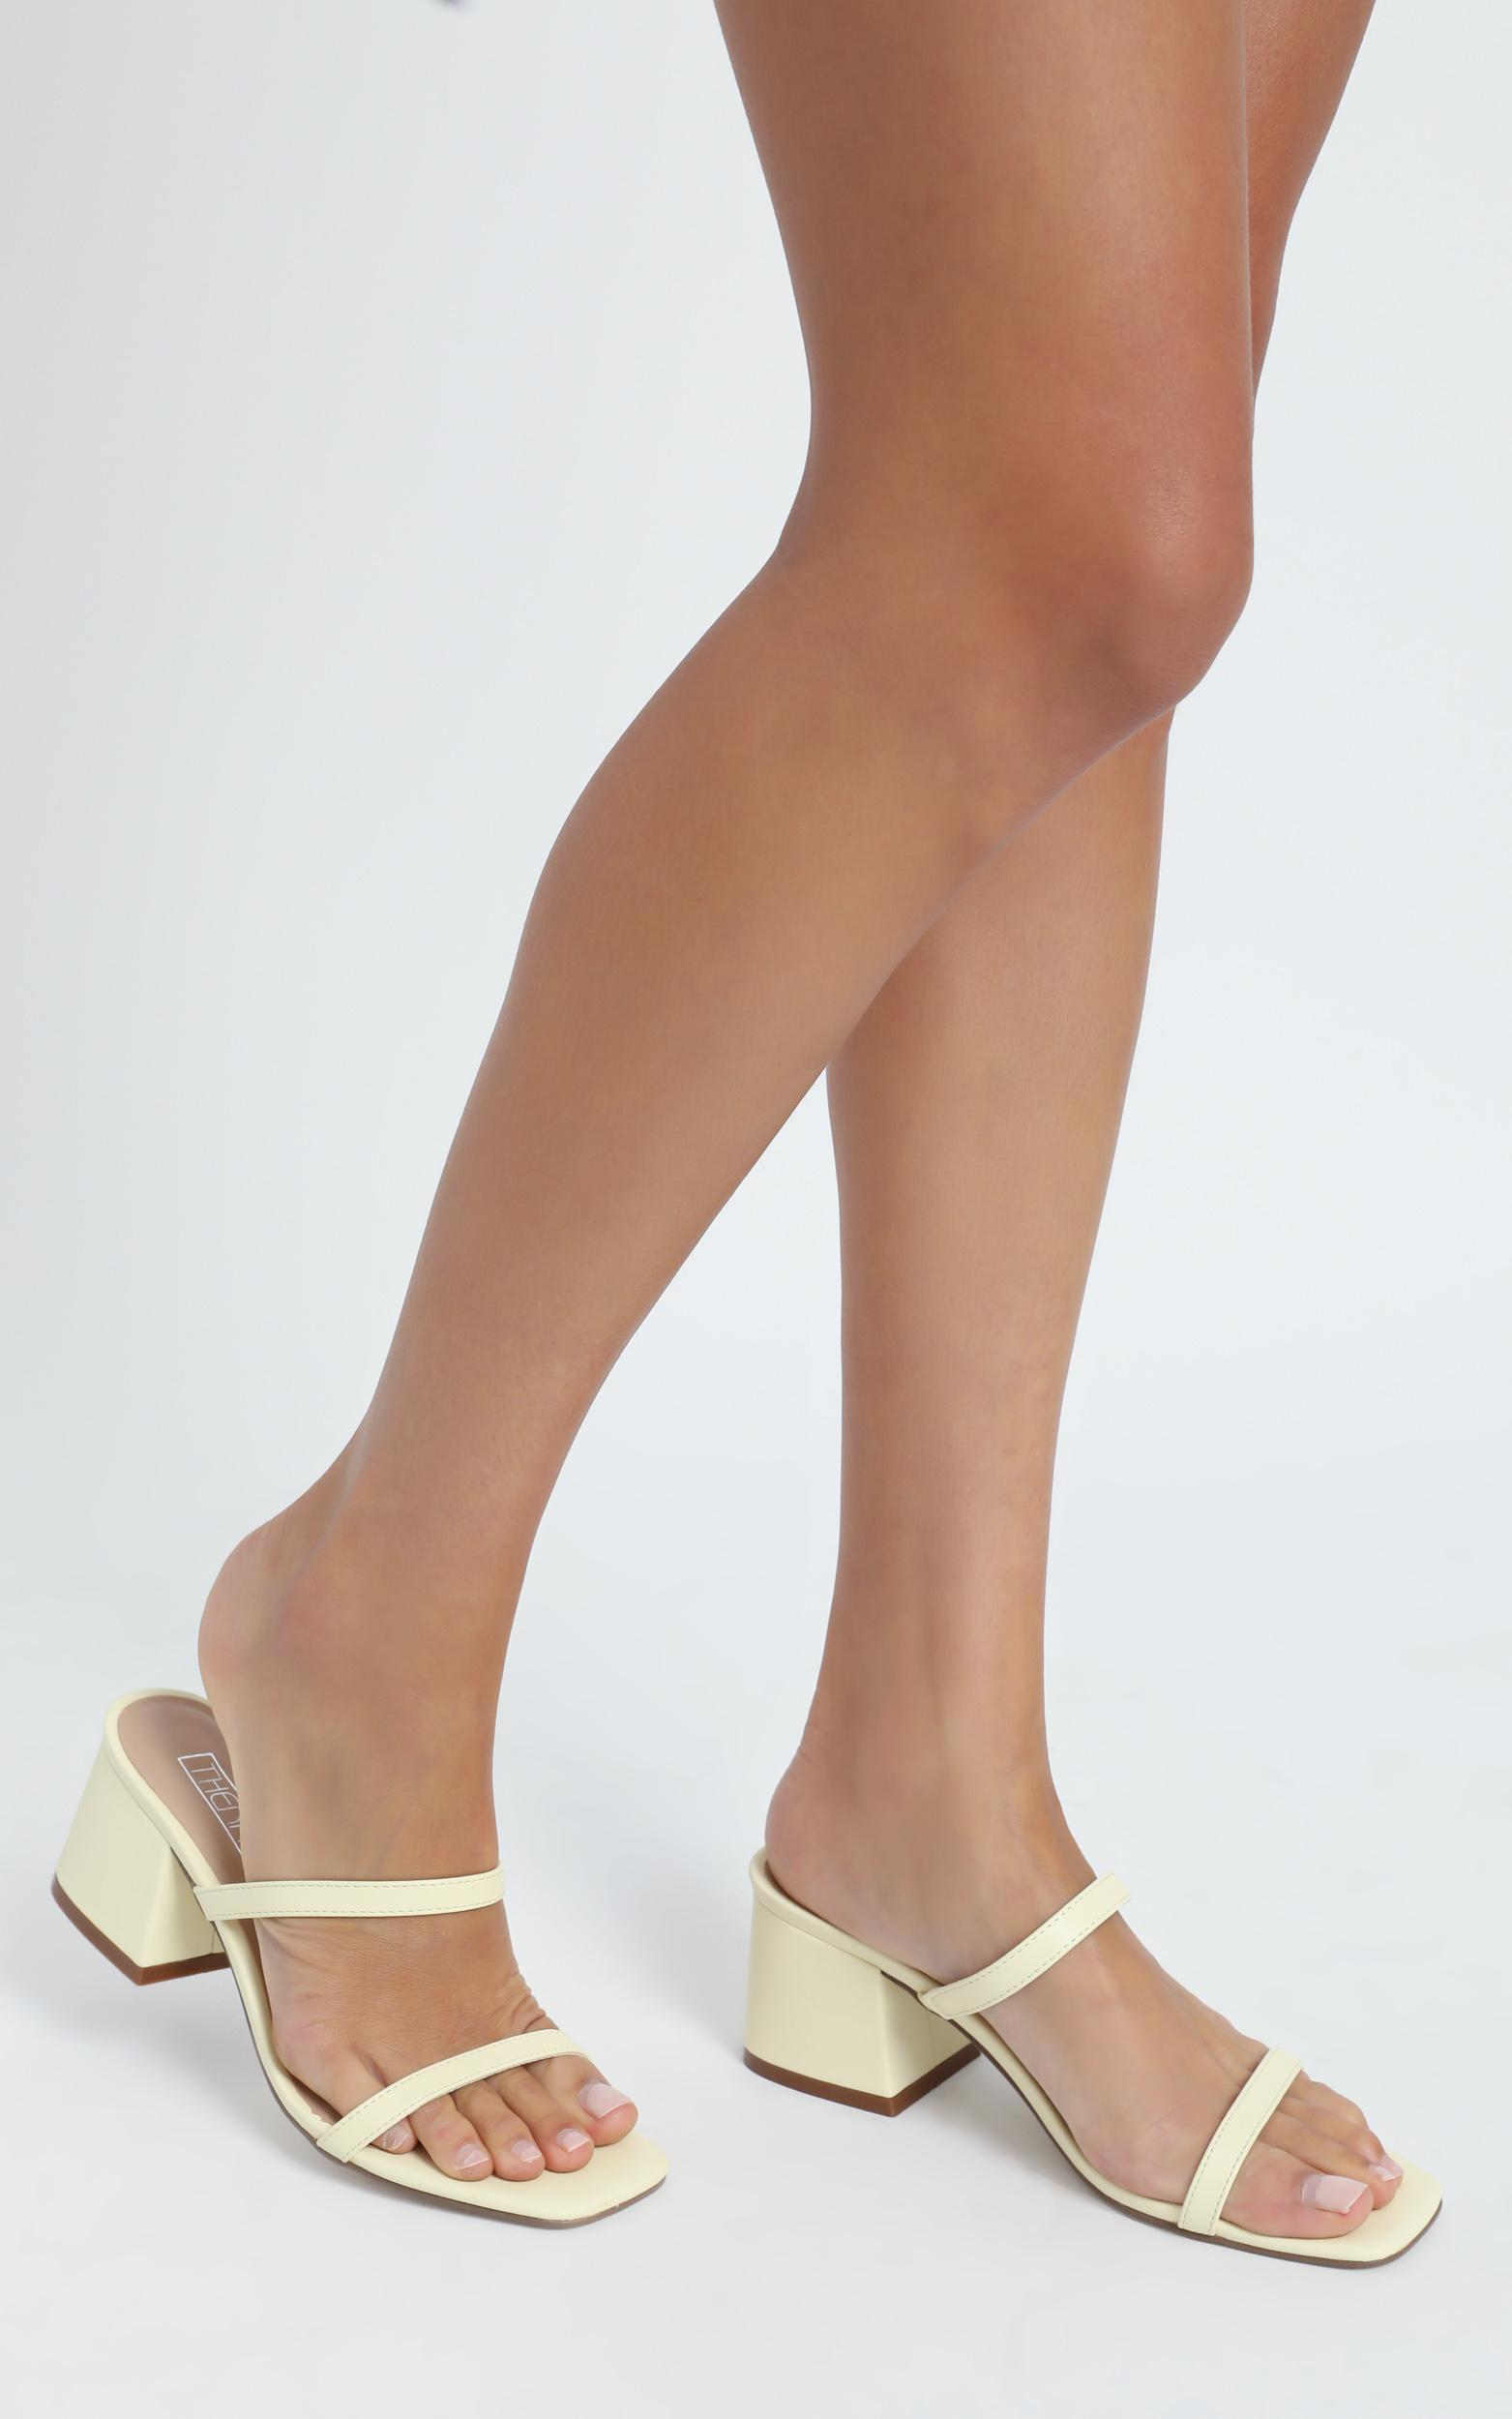 Therapy - Goldie Heels in Pastel Yellow - 5, YEL4, hi-res image number null